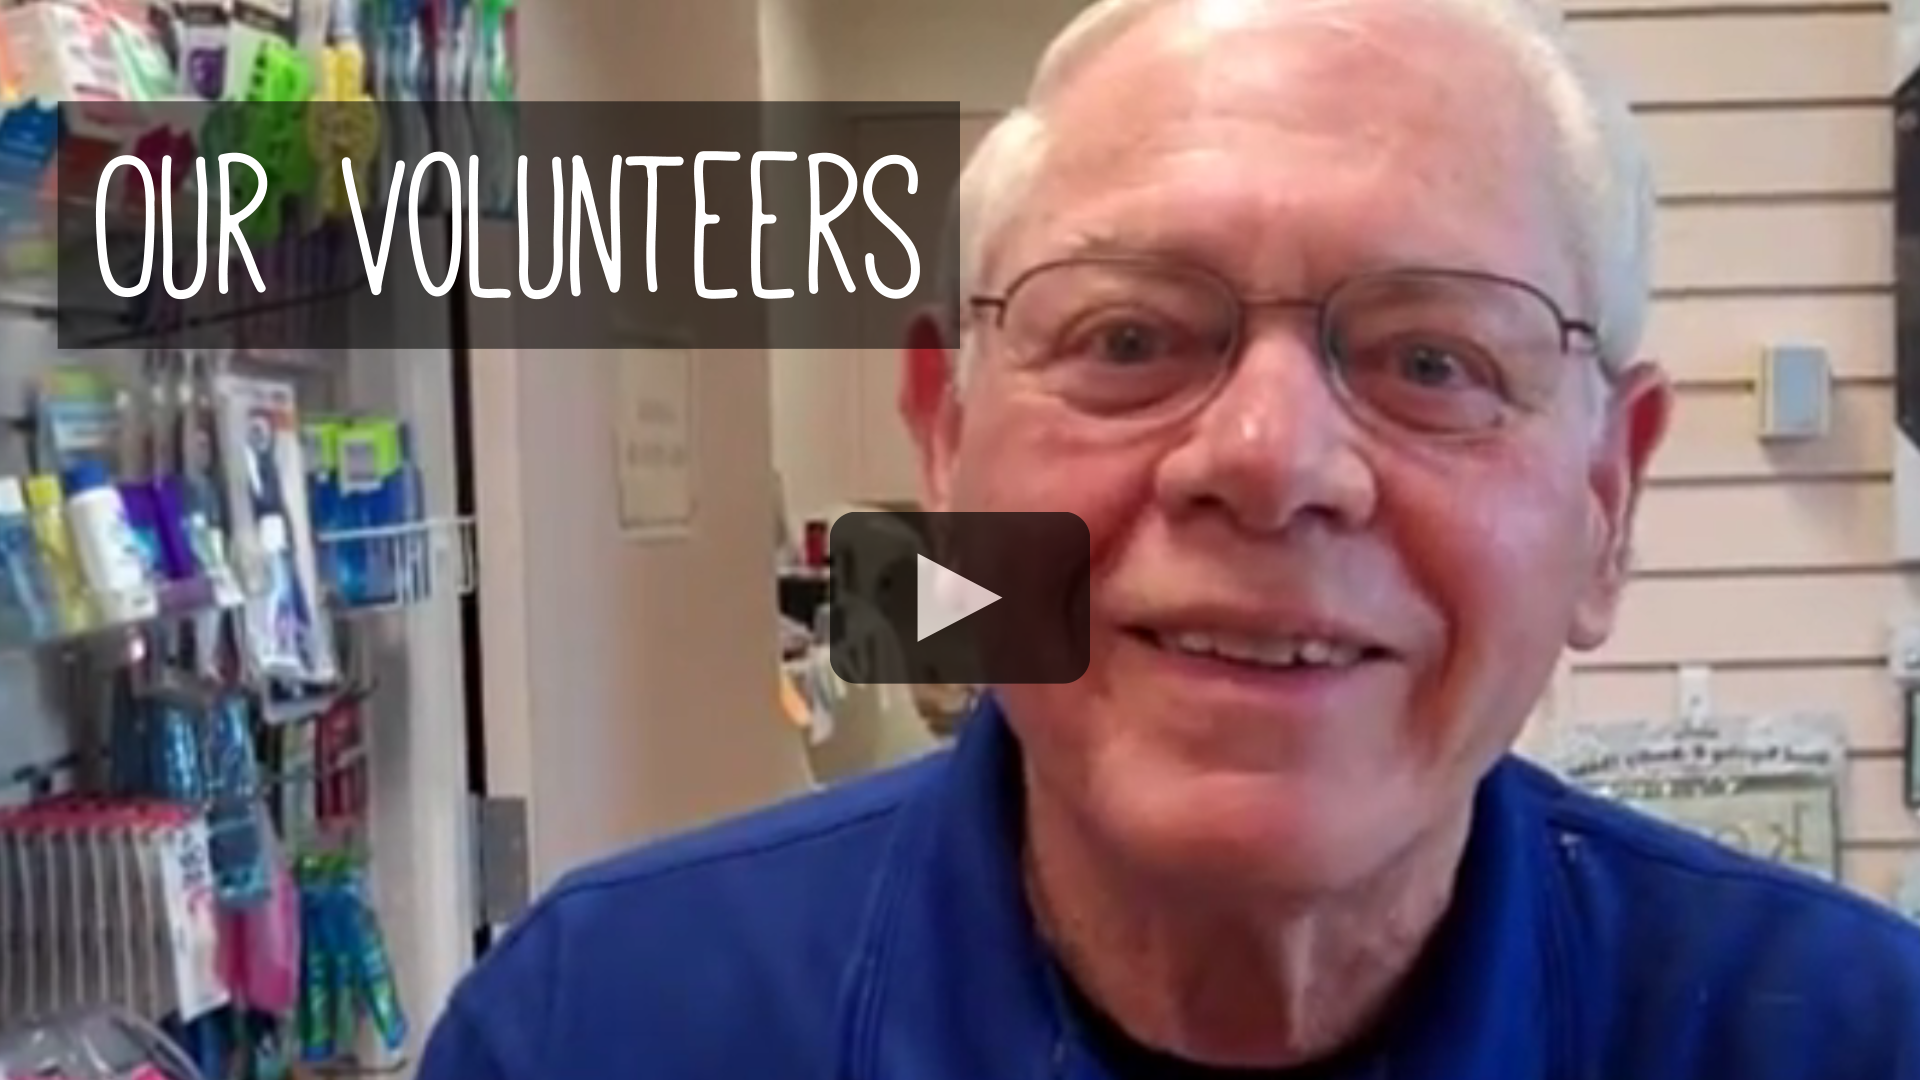 This video highlights the guild volunteers. What they provide to NorthBay and why they volunteer.